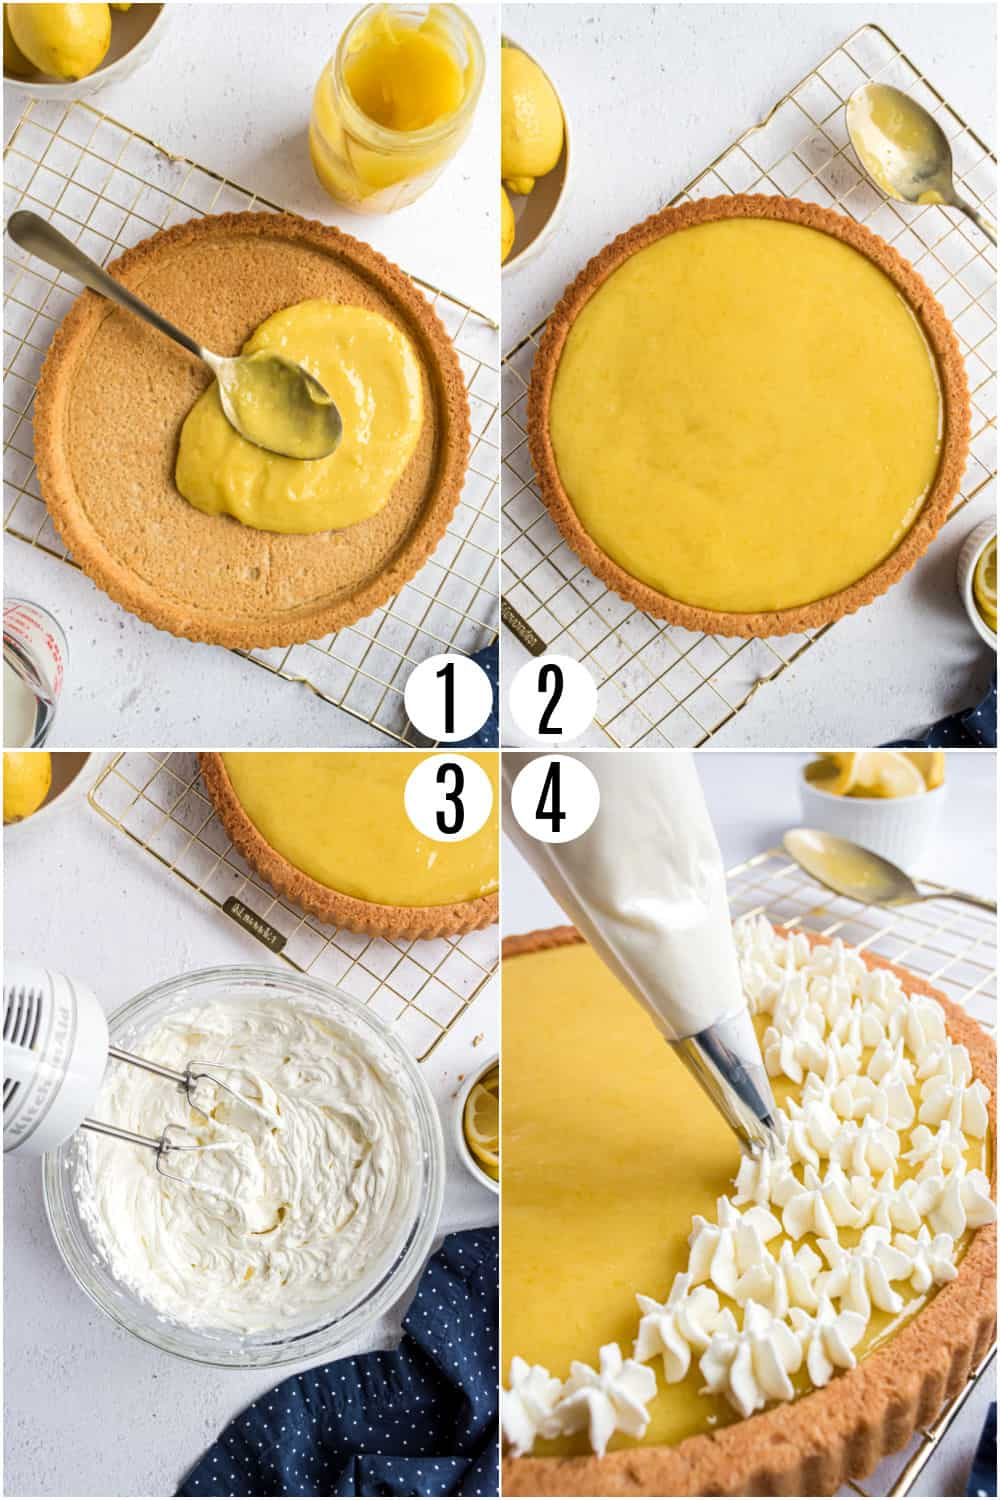 Step by step photos showing how to make lemon tart filling and whipped cream.